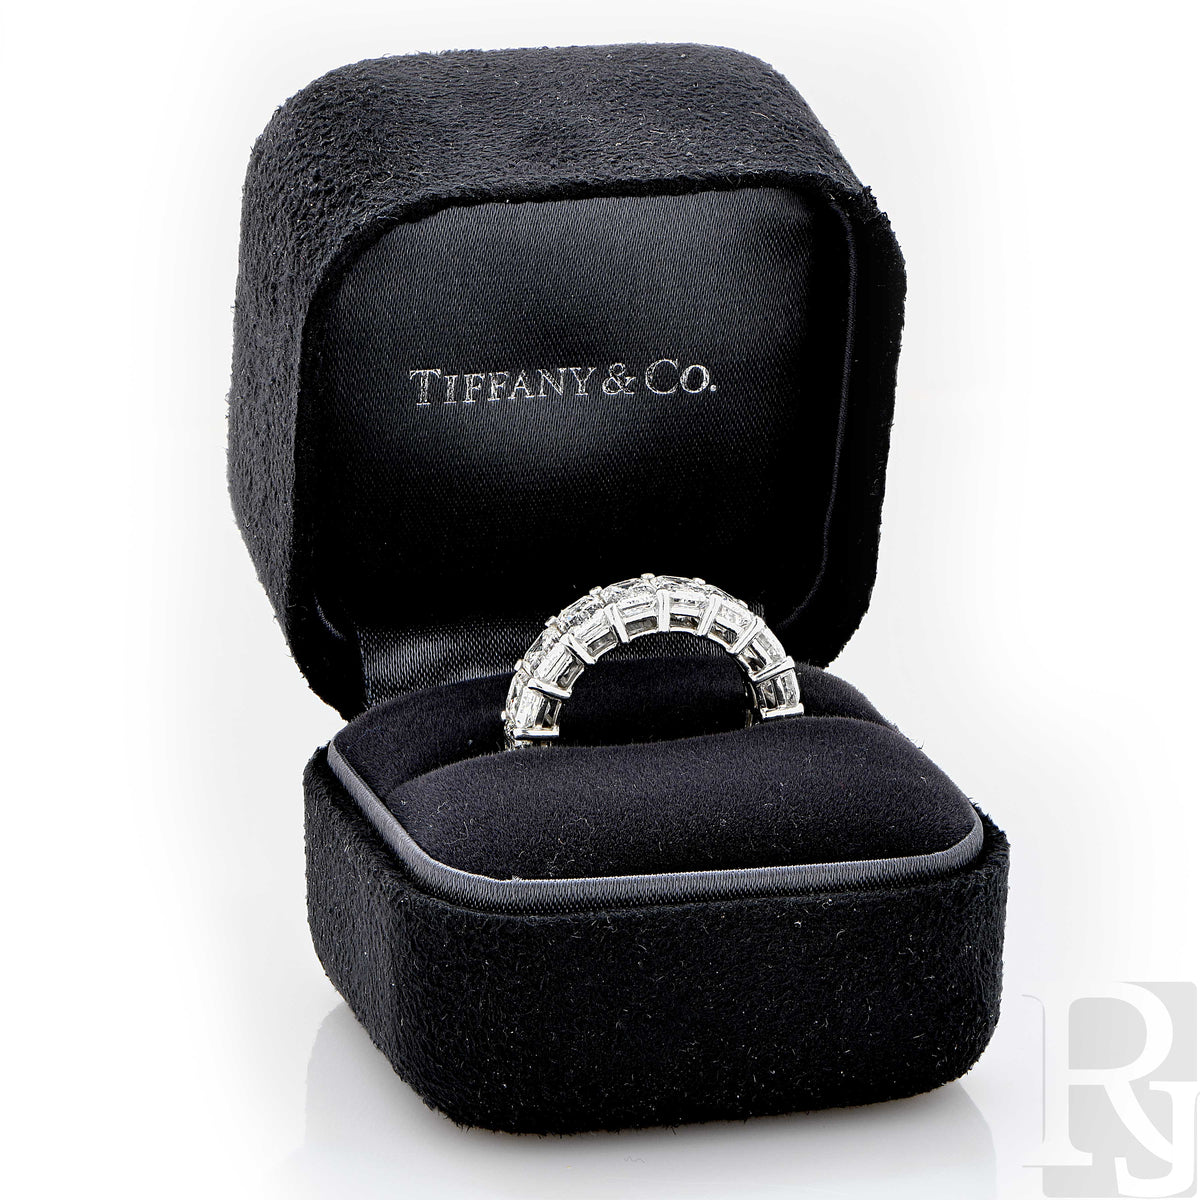 Tiffany & Company 8.98 Carat Diamond Eternity Band